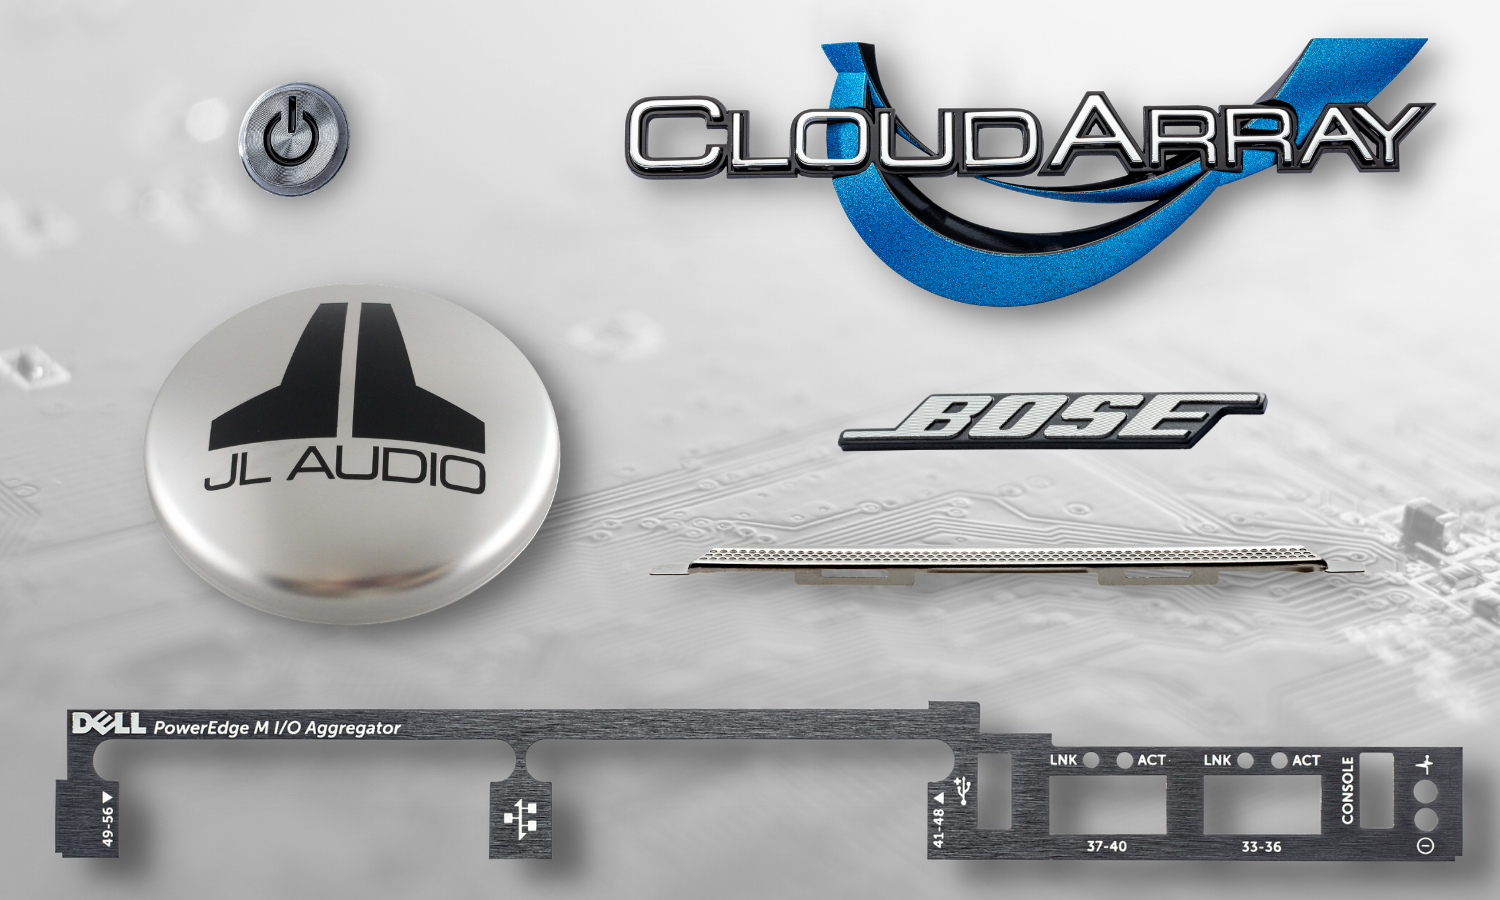 collage of parts; spin cut power button with black paint fill, JL audio dust cap cover with black recessed text, dell poweredge trim brushed plastic trim piece, perforated speaker grill for cell phone, diamond cut bose logo, blue chrome and black plastic server name plate